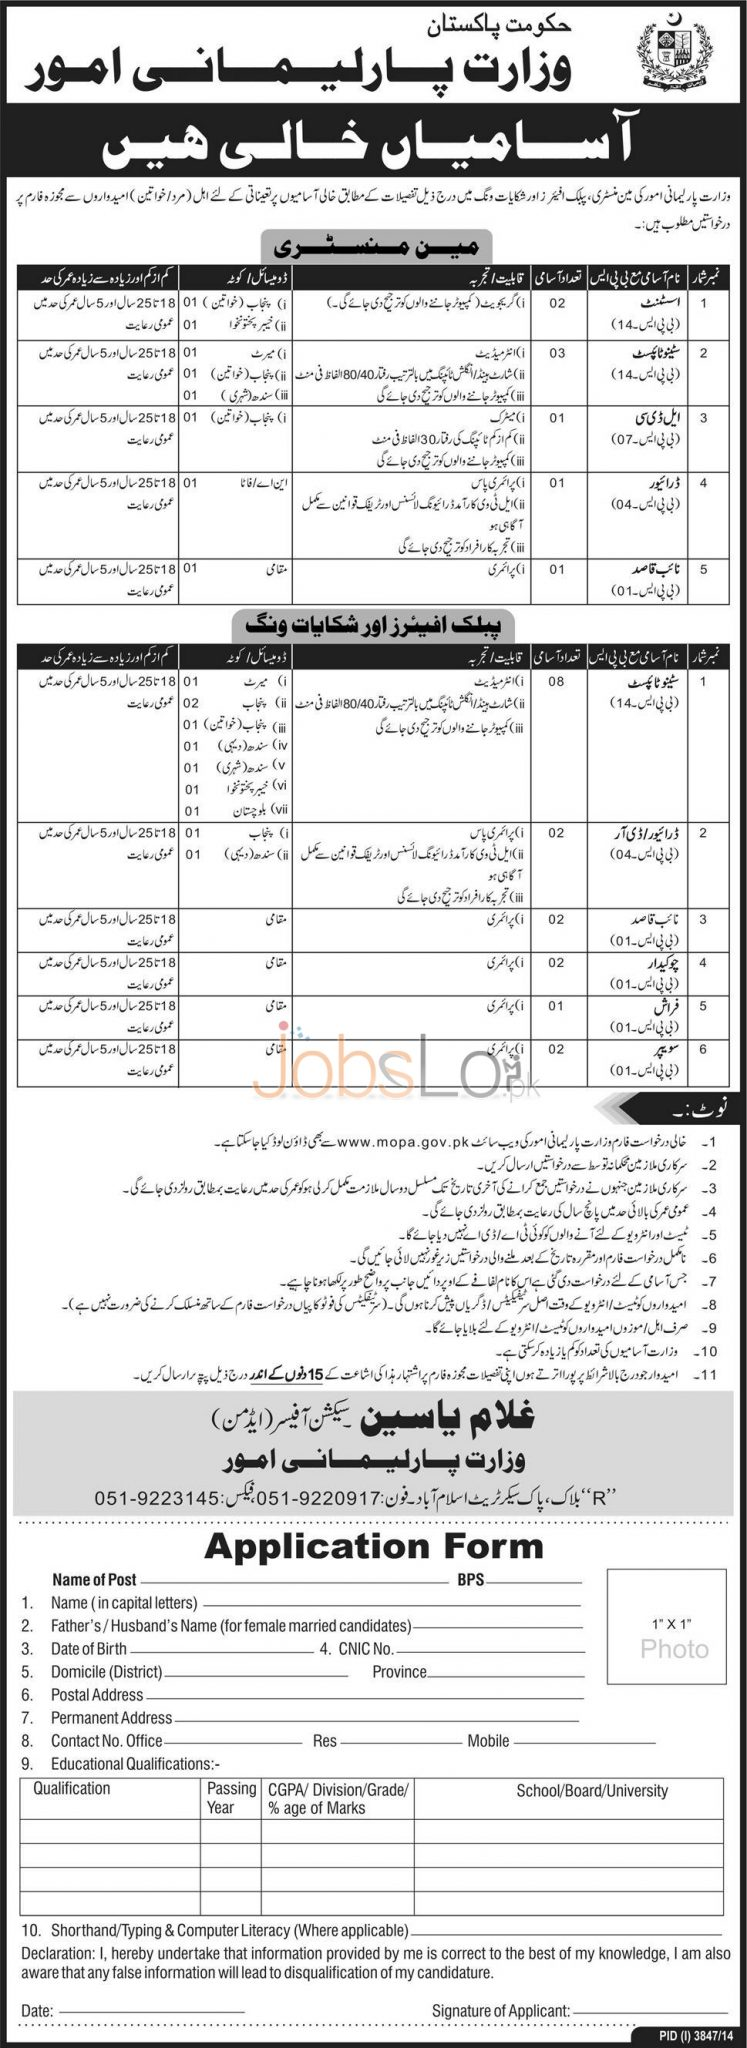 Ministry of Parliamentary Affairs Pakistan Jobs